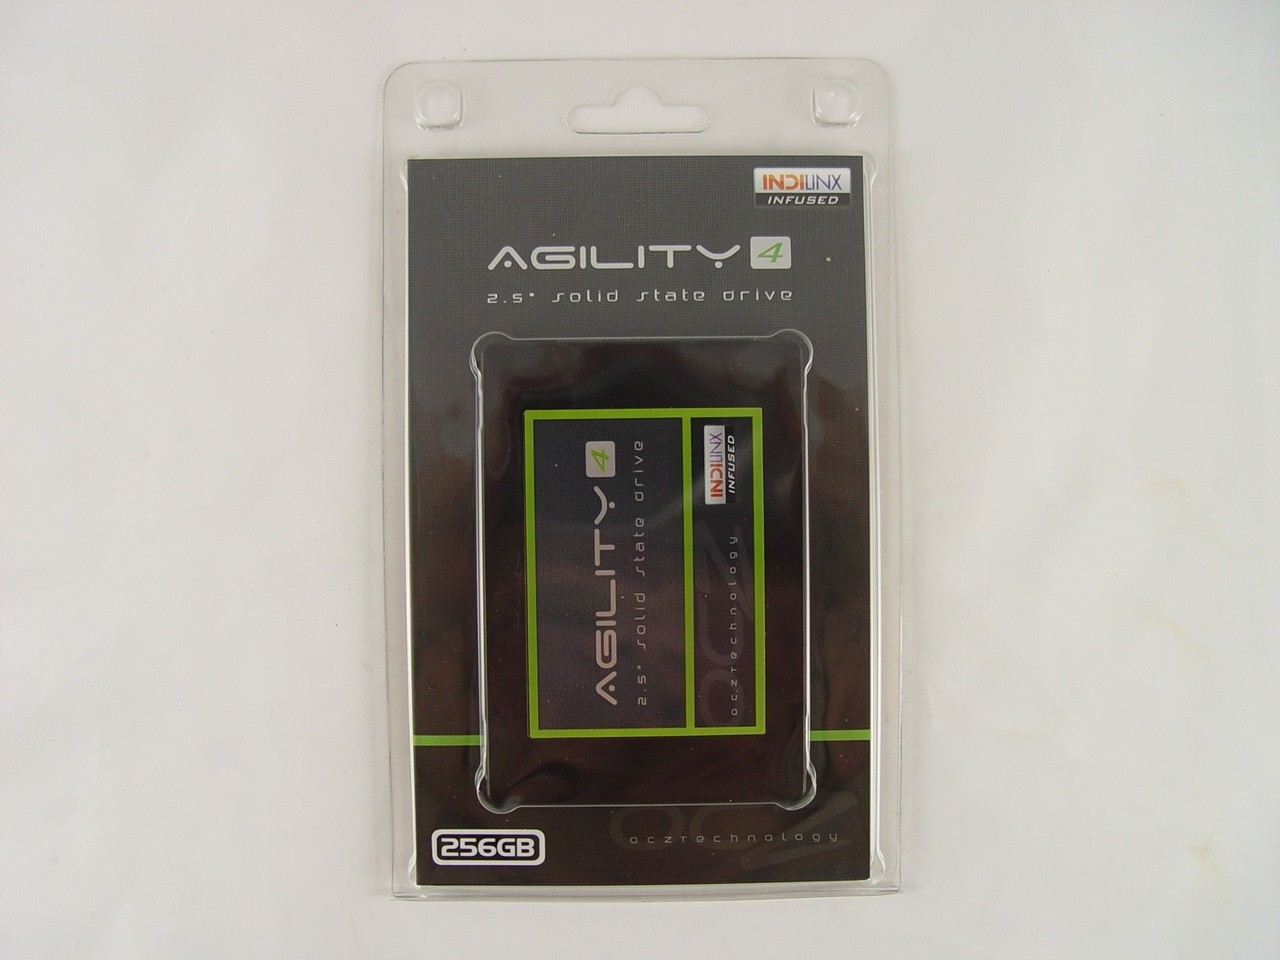 ocz_technology_agility_4_256gb_solid_state_drive_review